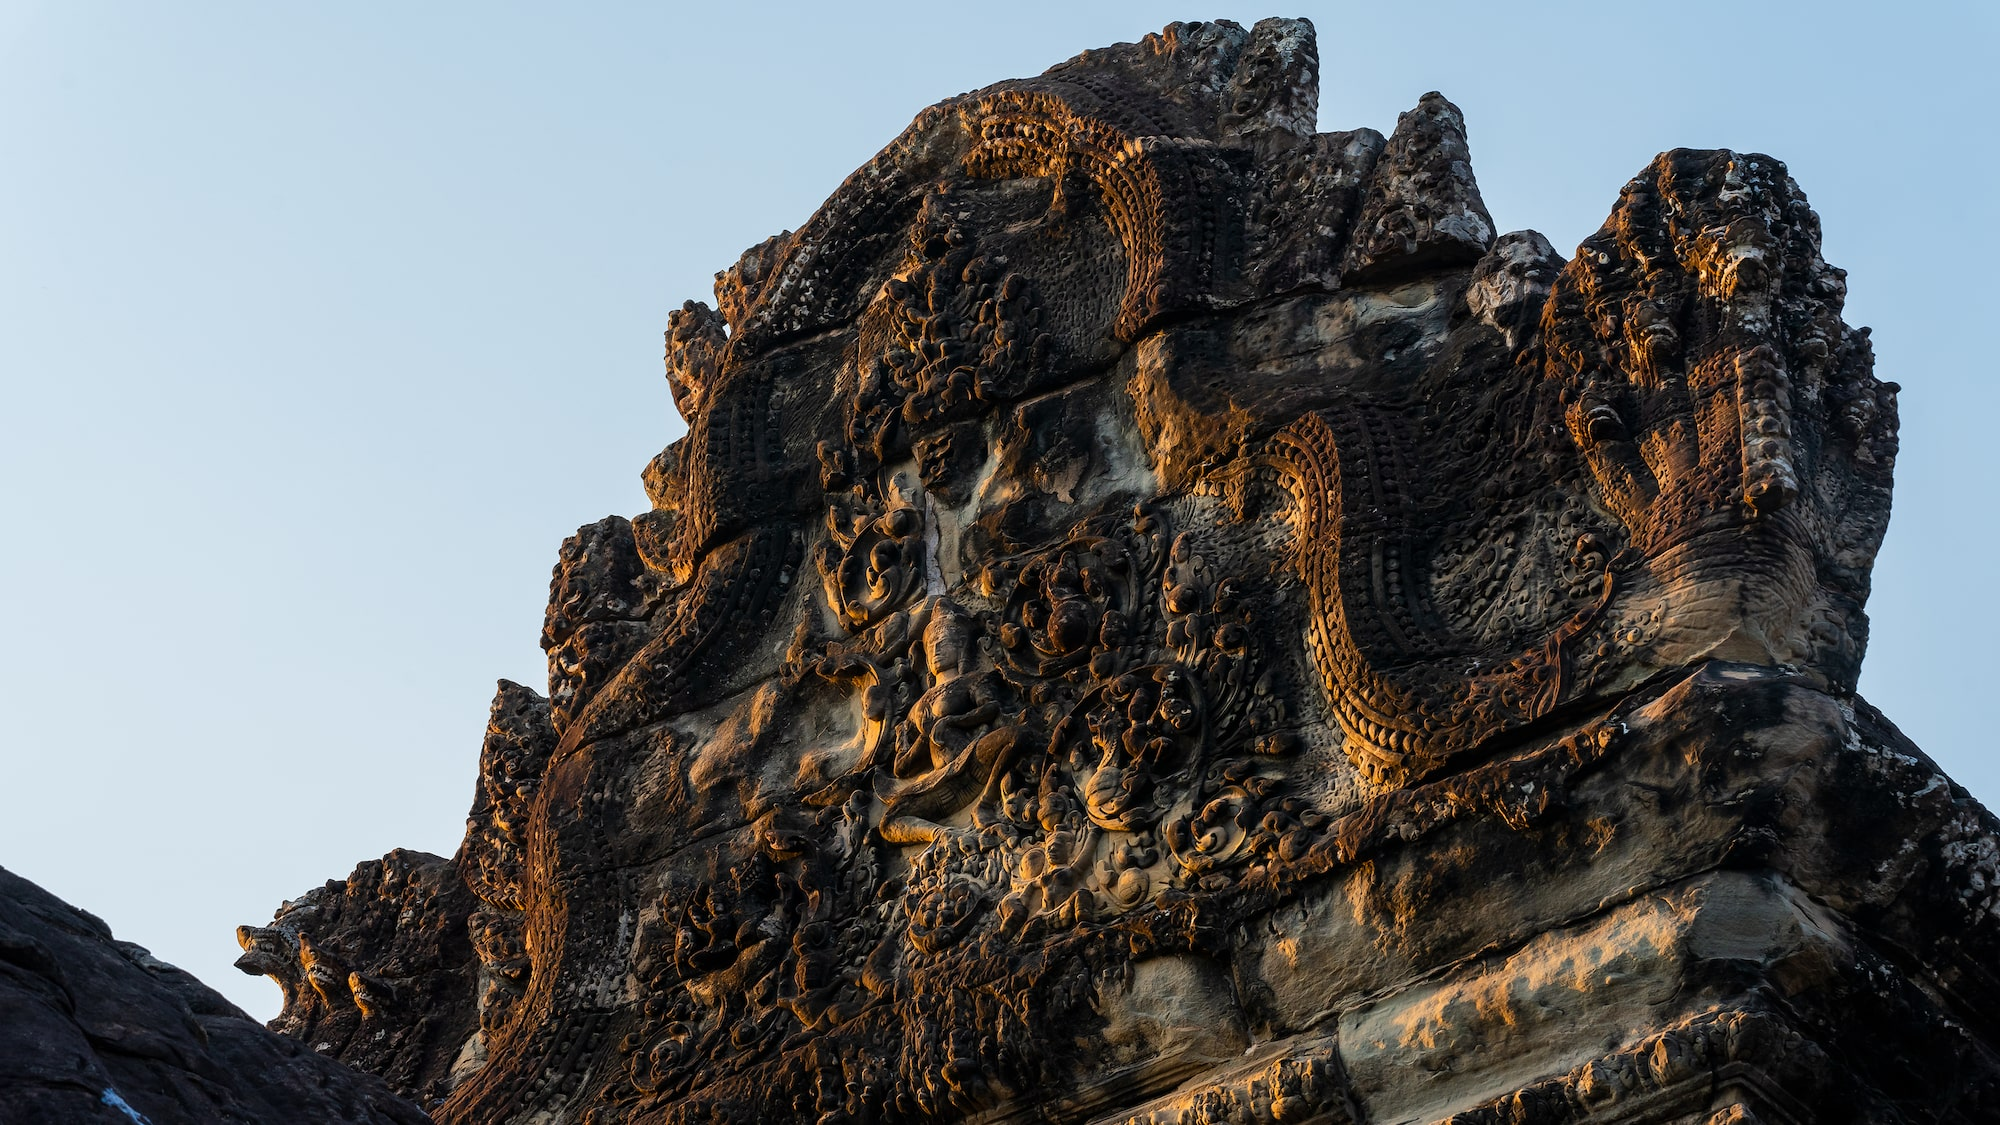 Stone carvings of ruins on stone arch in Angkor Wat